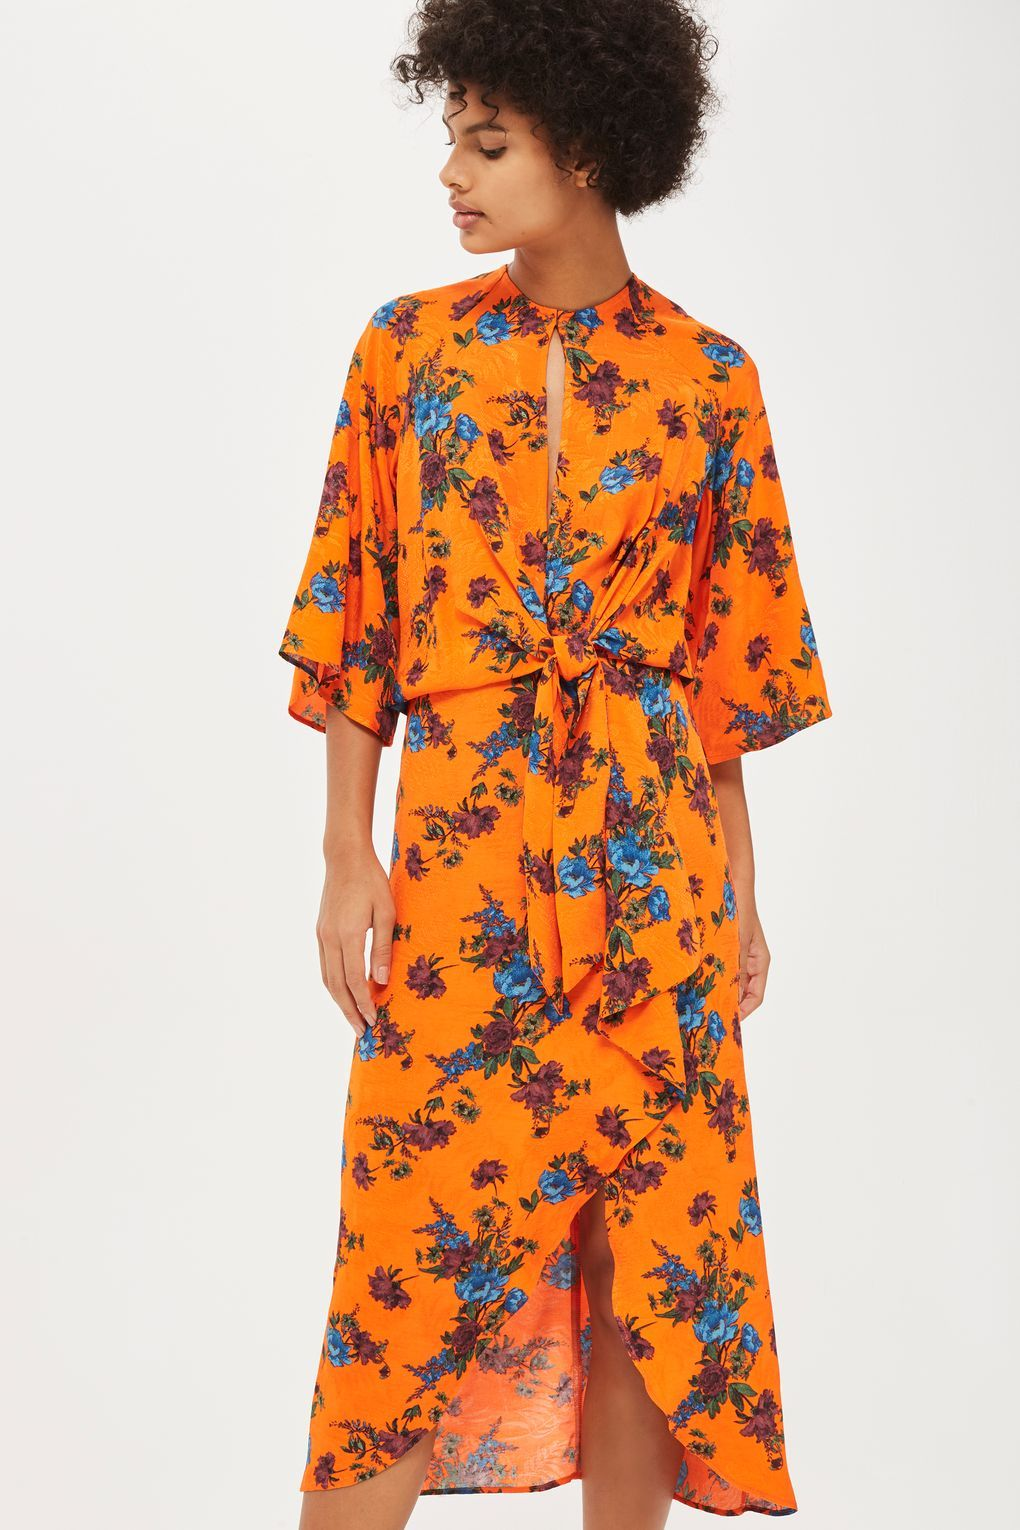 b459b78d57 Orange Floral Knot Front Midi Dress - New In Dresses - New In - Topshop